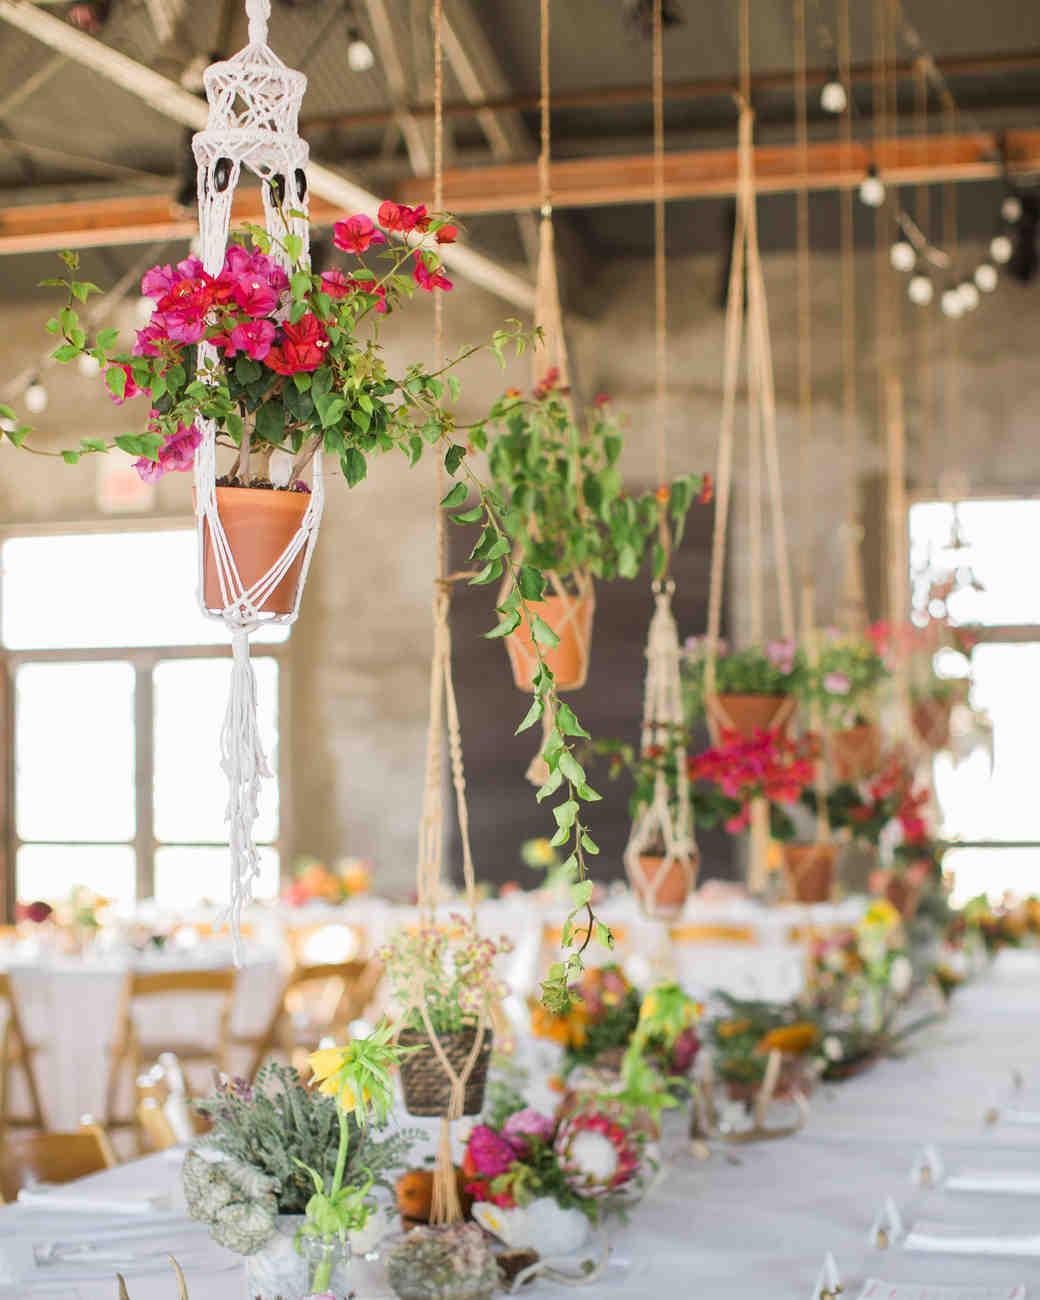 Wedding Flower Decoration Photos: Boho-Chic Wedding Ideas For Free-Spirited Brides And